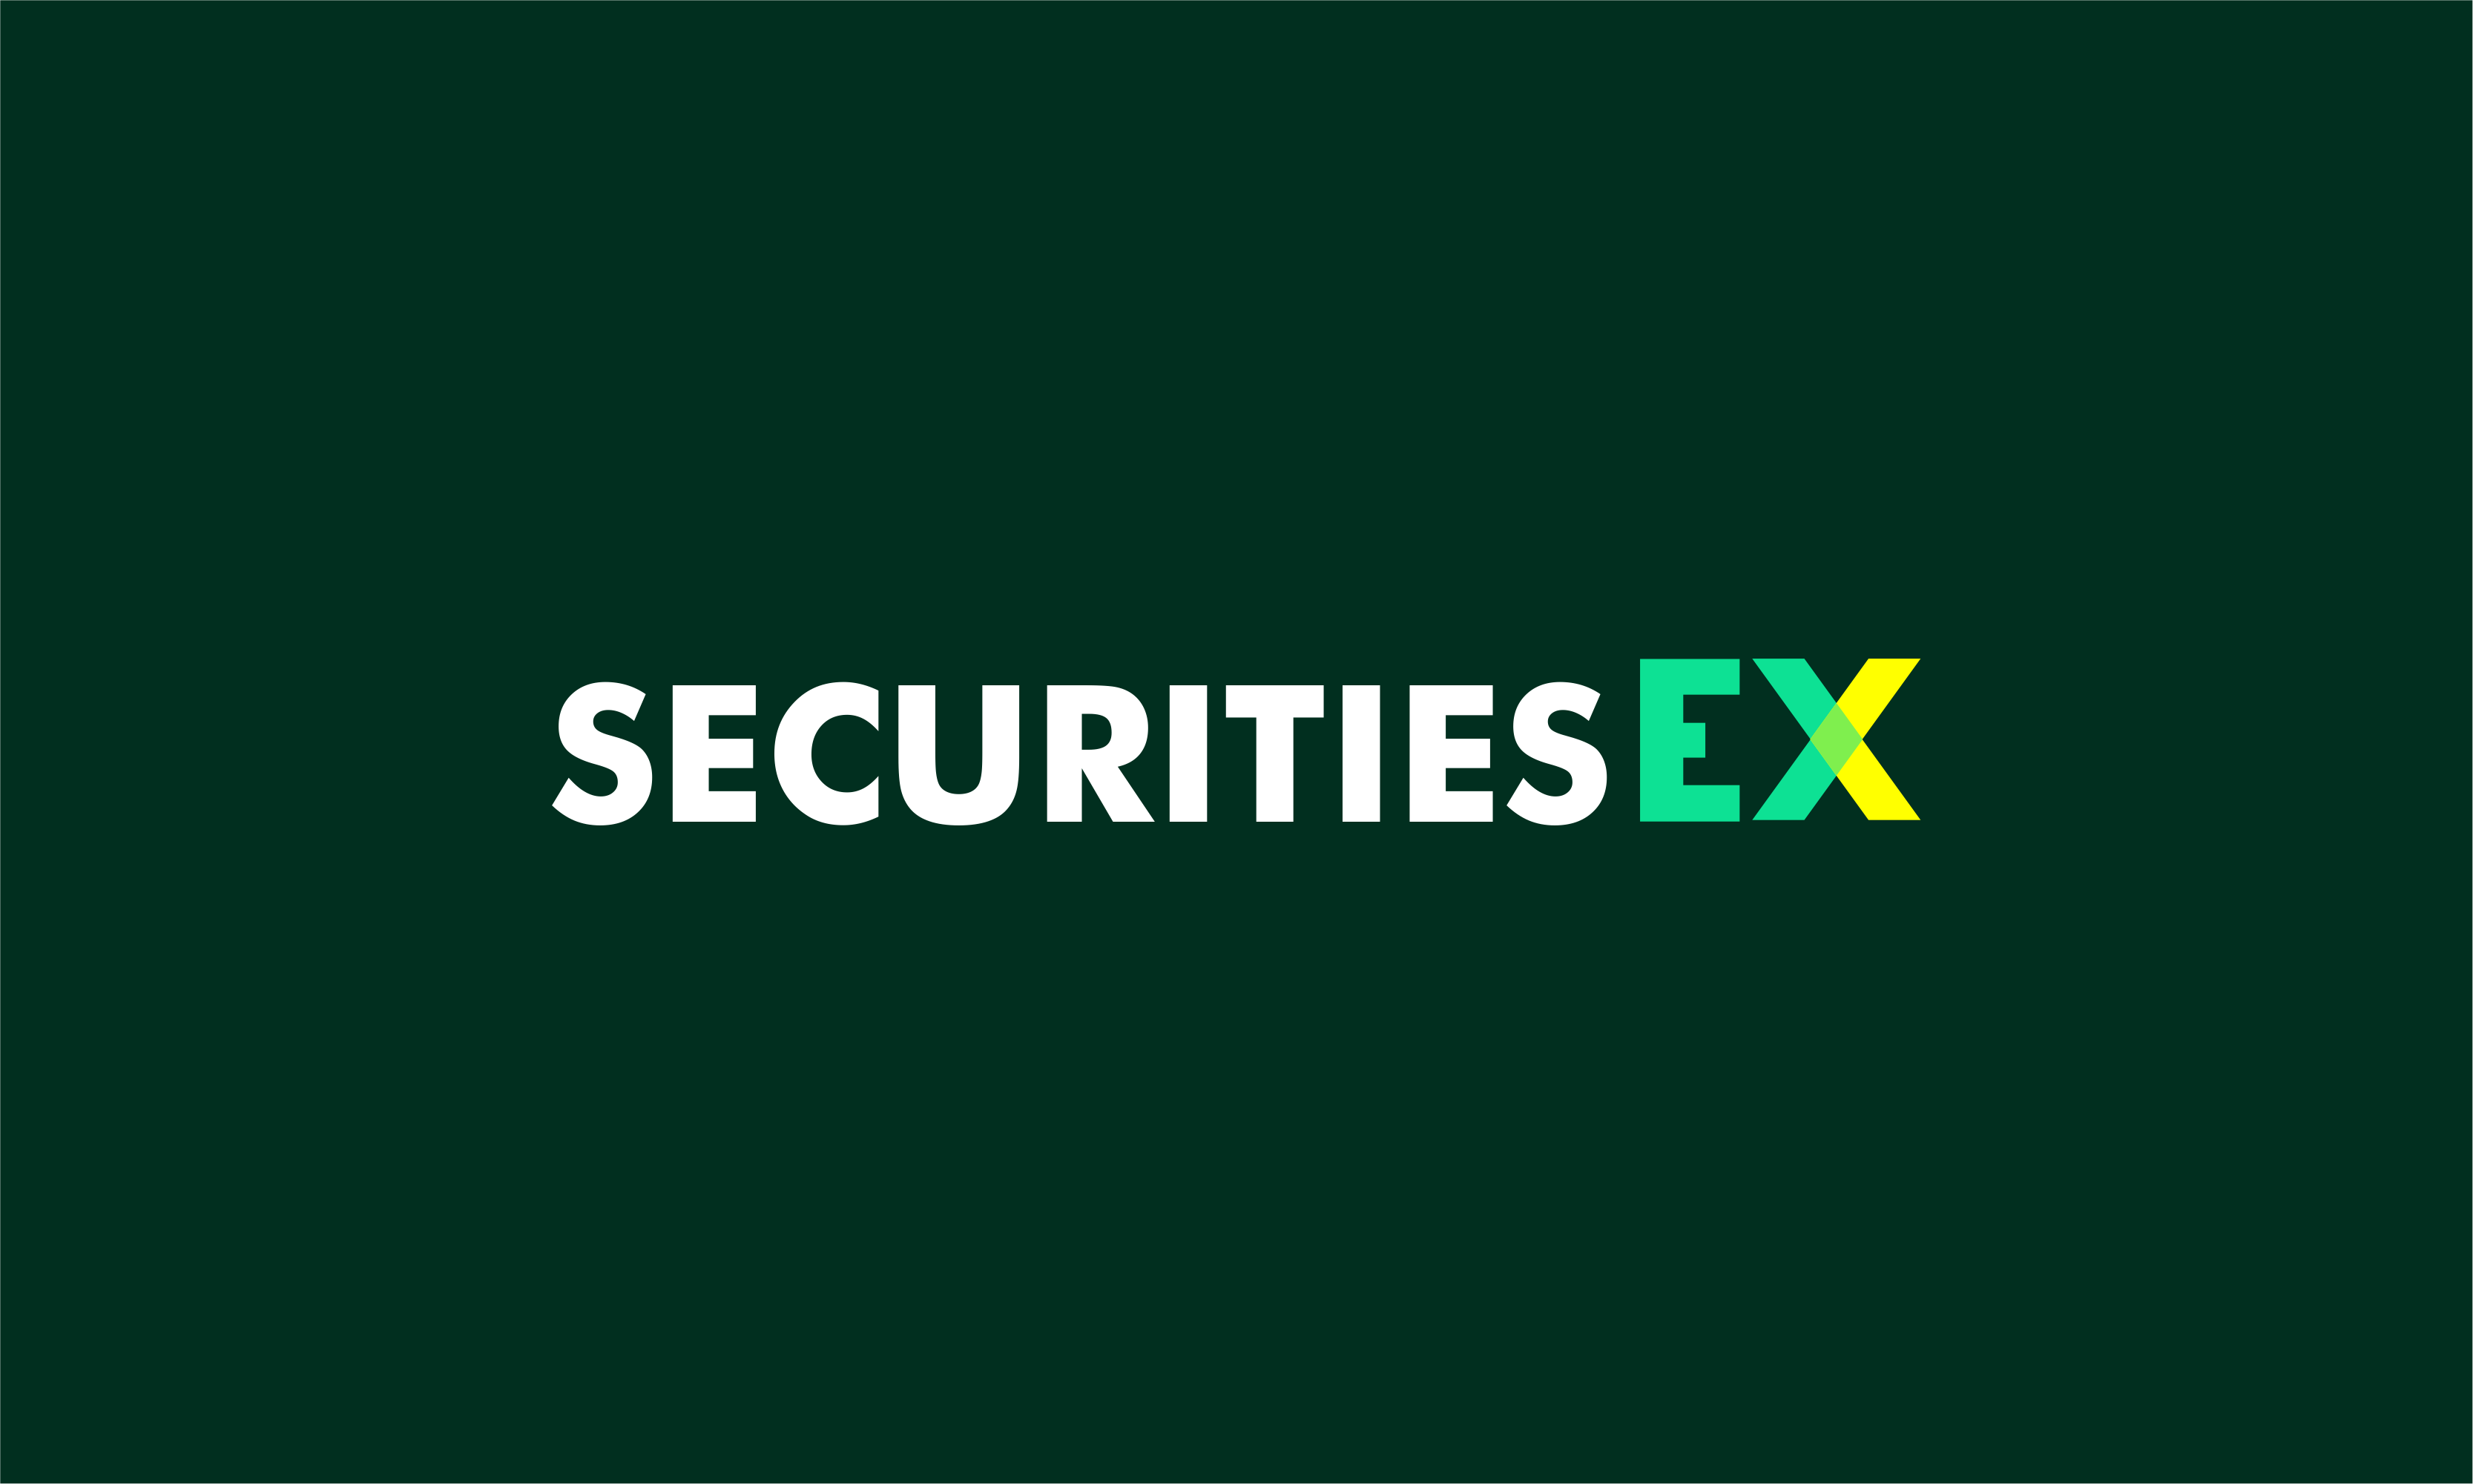 Securitiesex